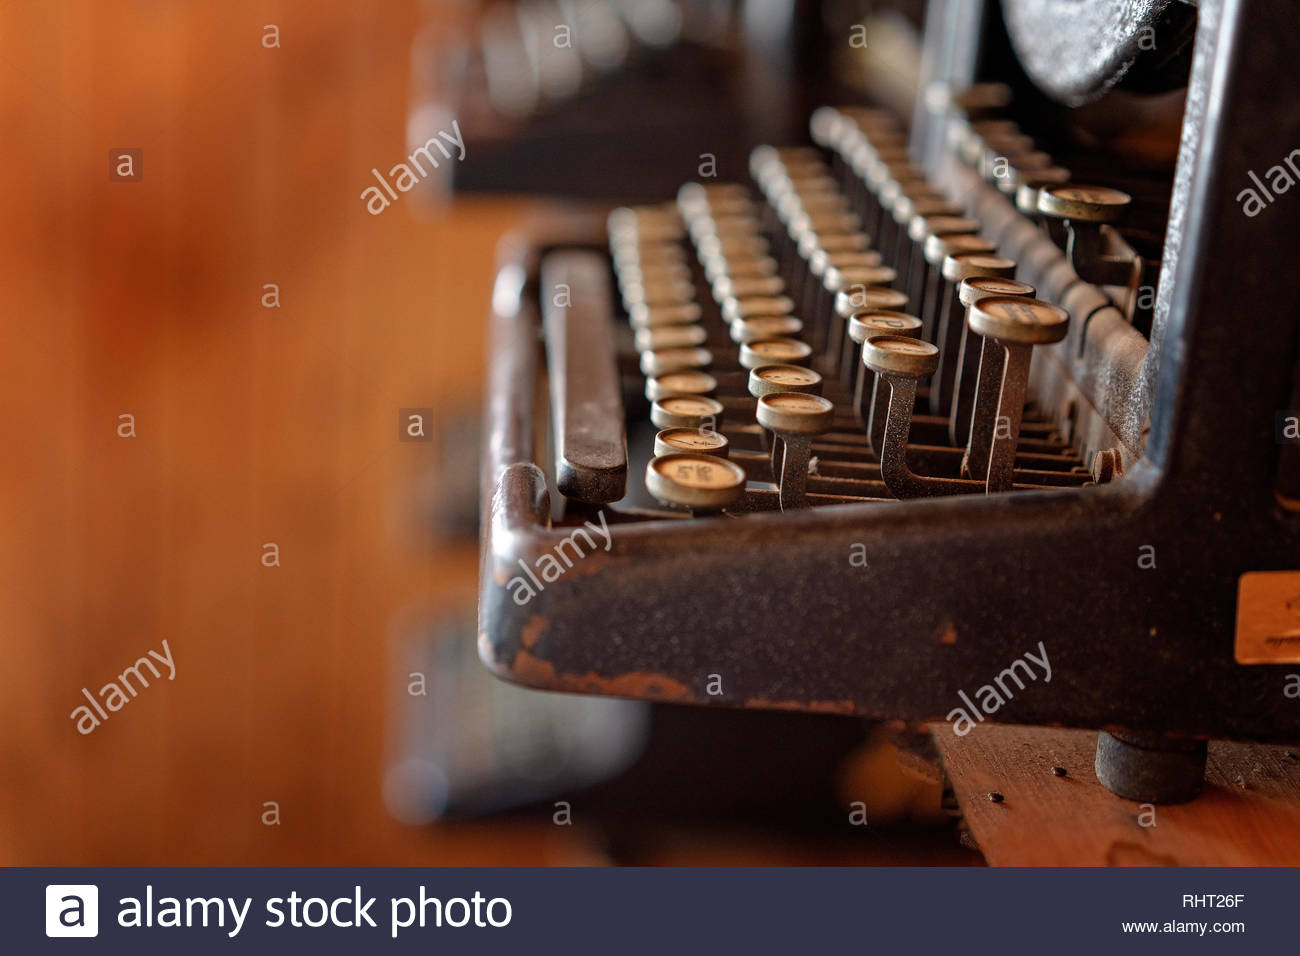 Close up of the well worn keys of a vintage typewriter - Stock Image